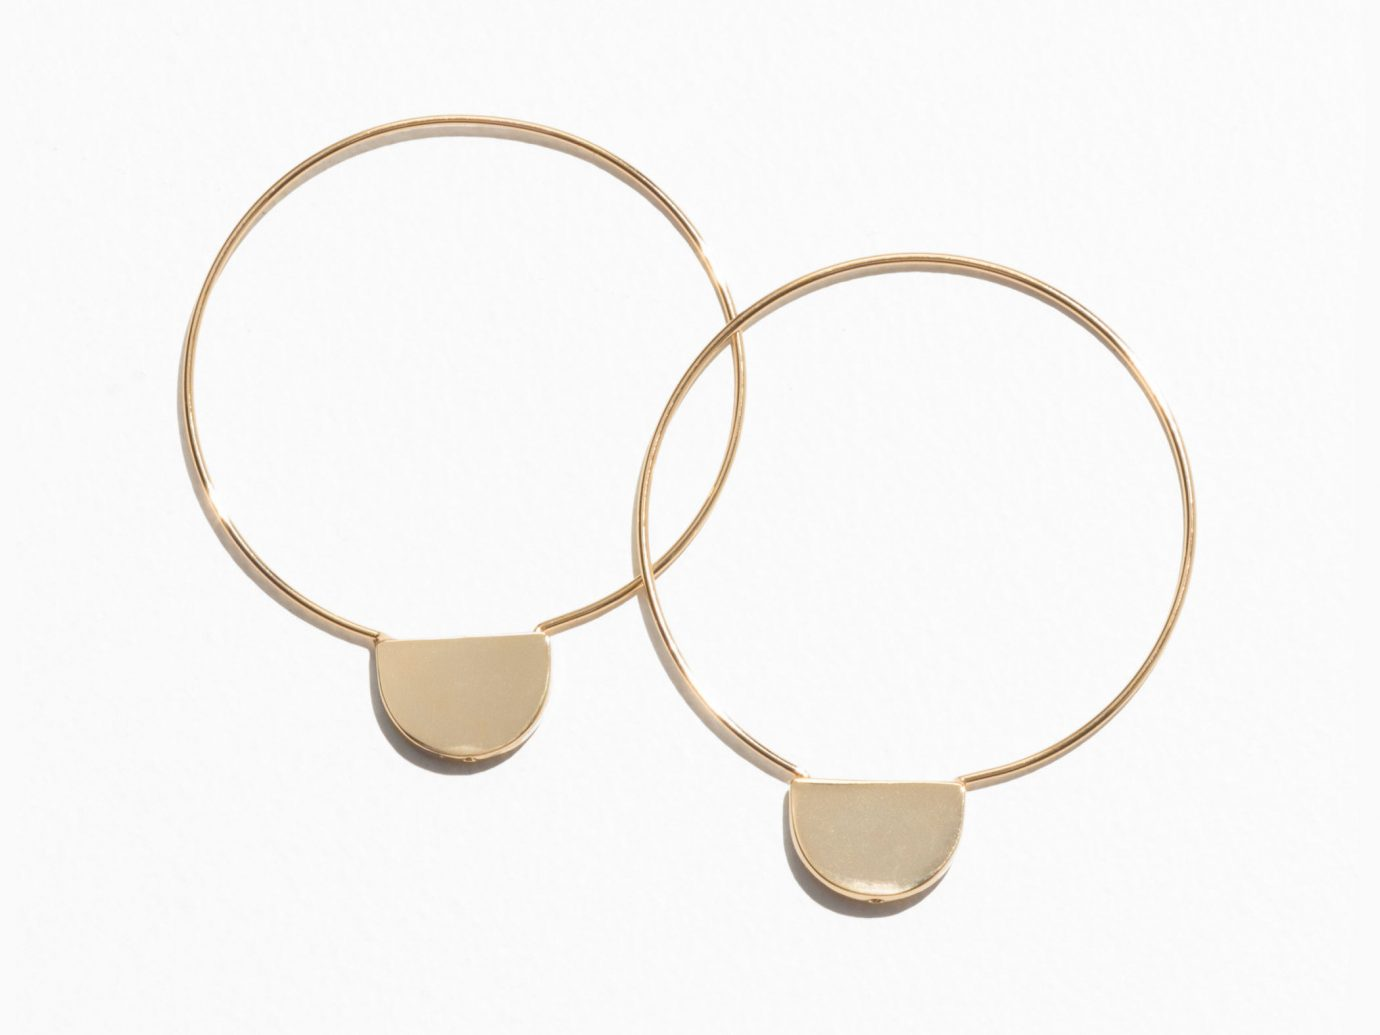 Spring Travel Style + Design Summer Travel Travel Lifestyle Travel Shop accessory fashion accessory jewellery body jewelry product design product material necklet bangle circle